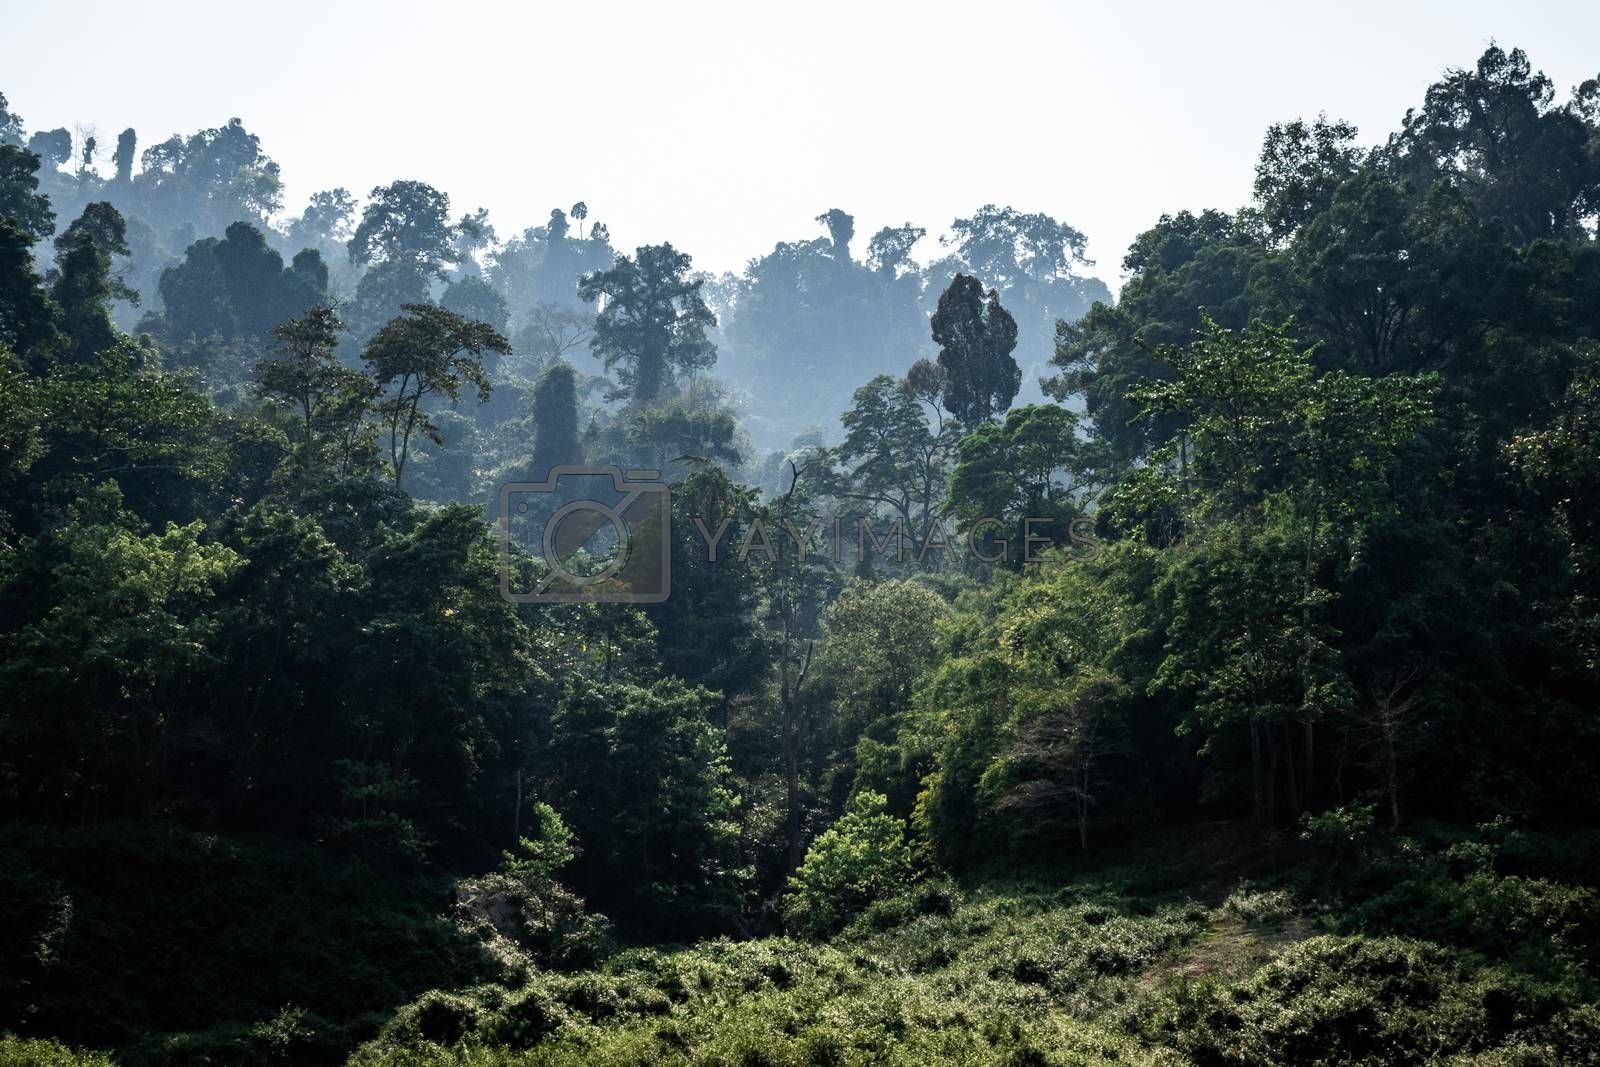 Landscape of tropical rainforest, haze cover green area in morning after moisture touching heat of sunlight, Khao Yai national park, Thailand.